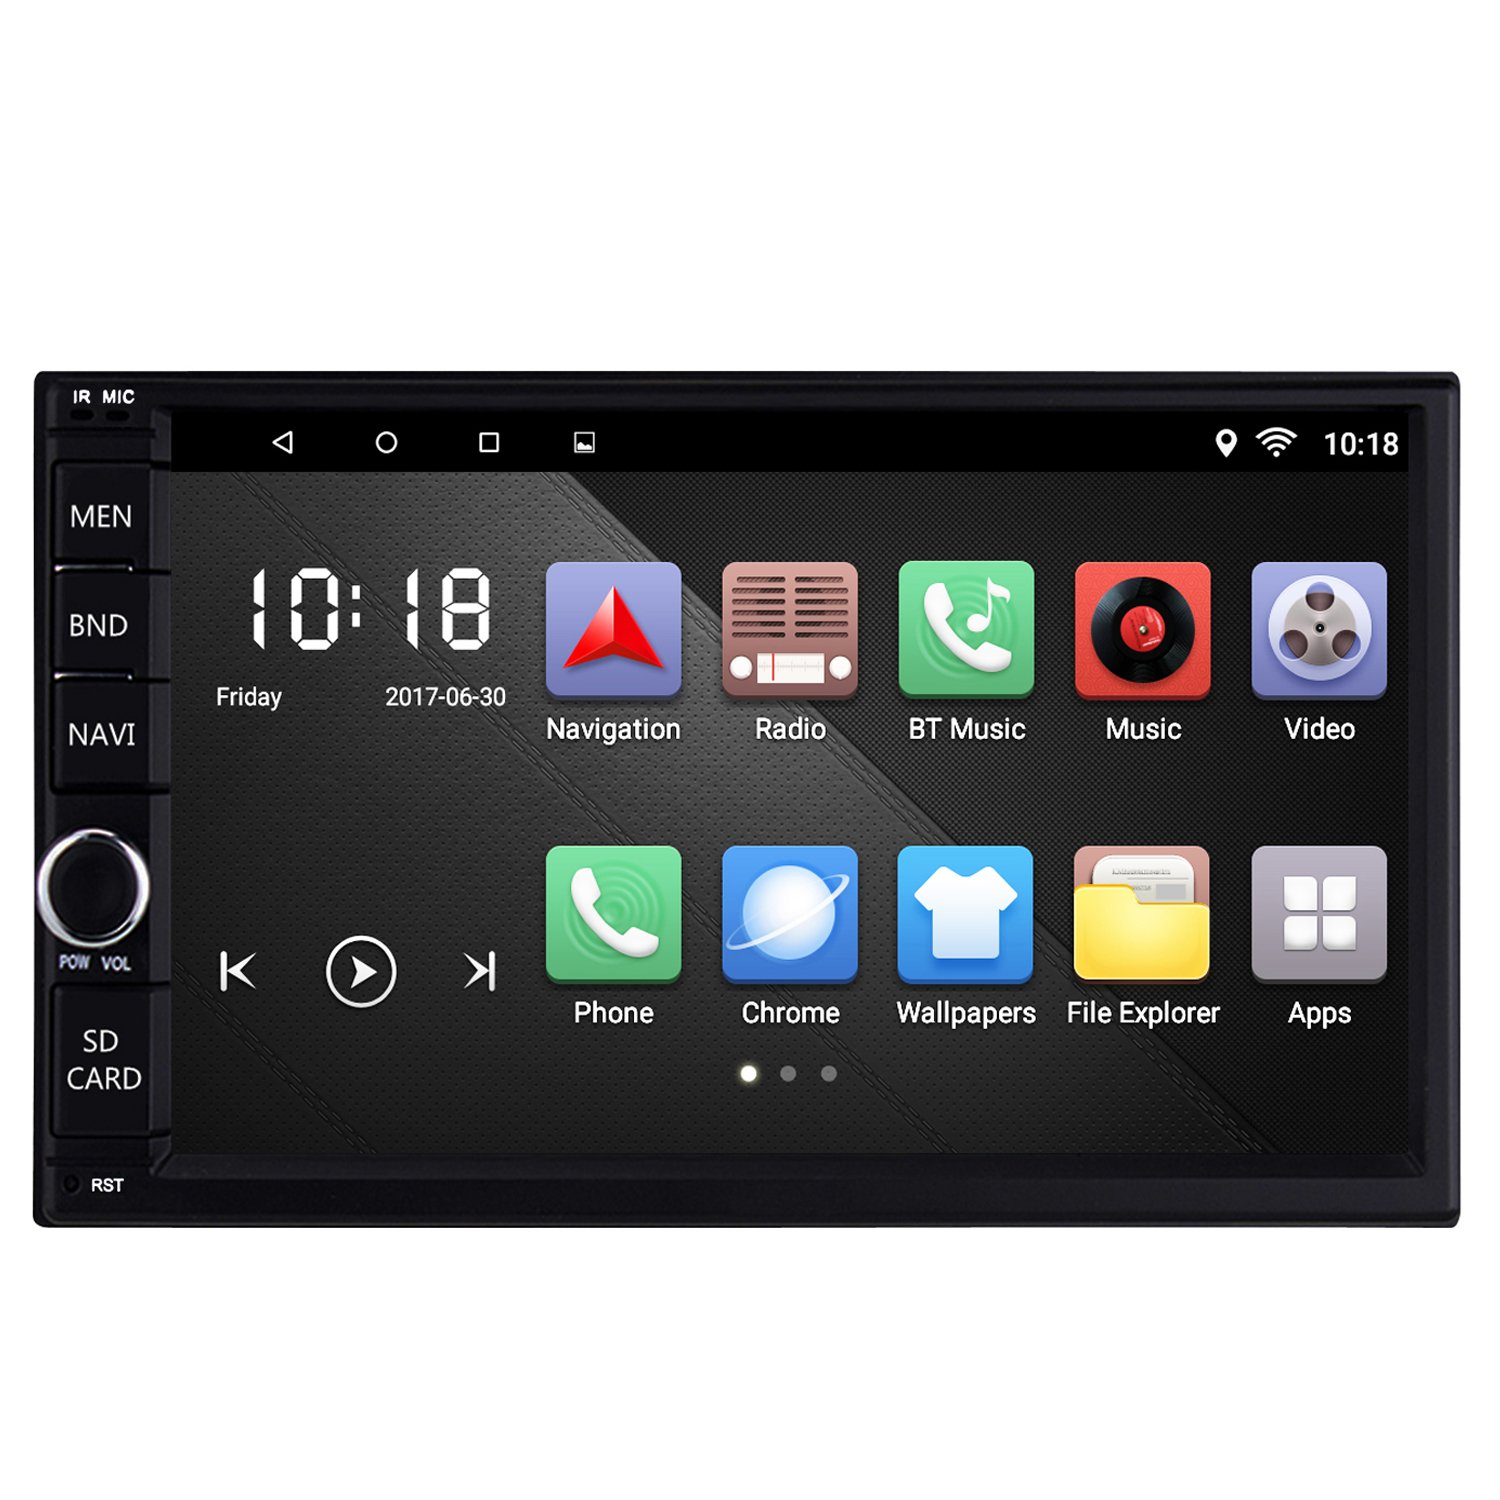 Ezonetronics Android 6.0 Quad Core Car Radio Stereo 2 Din 7 inch Capacitive Touch Screen High Definition 1024x600 GPS Navigation USB SD Player 2G DDR3 16G NAND Memory Flash Rhythm Electronics Limited RM-CT008